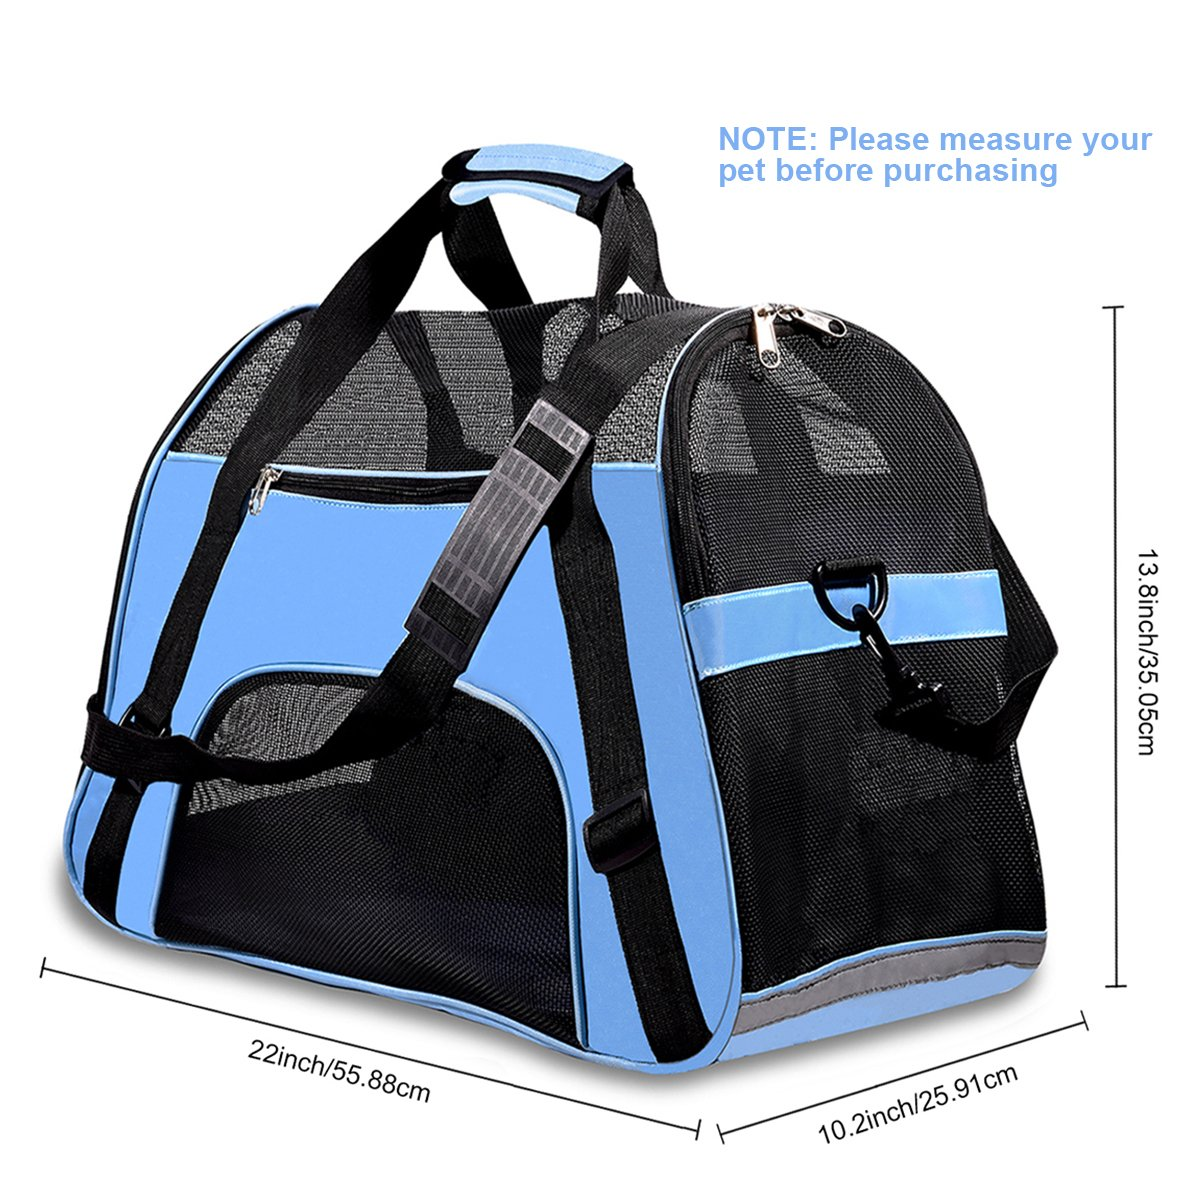 PPOGOO Pet Travel Carriers Soft Sided Portable Bags for Dogs and Cats Airline Approved Dog Carrier 22'' L x 10.2'' W x 13.8'' H Sky Blue by PPOGOO (Image #4)